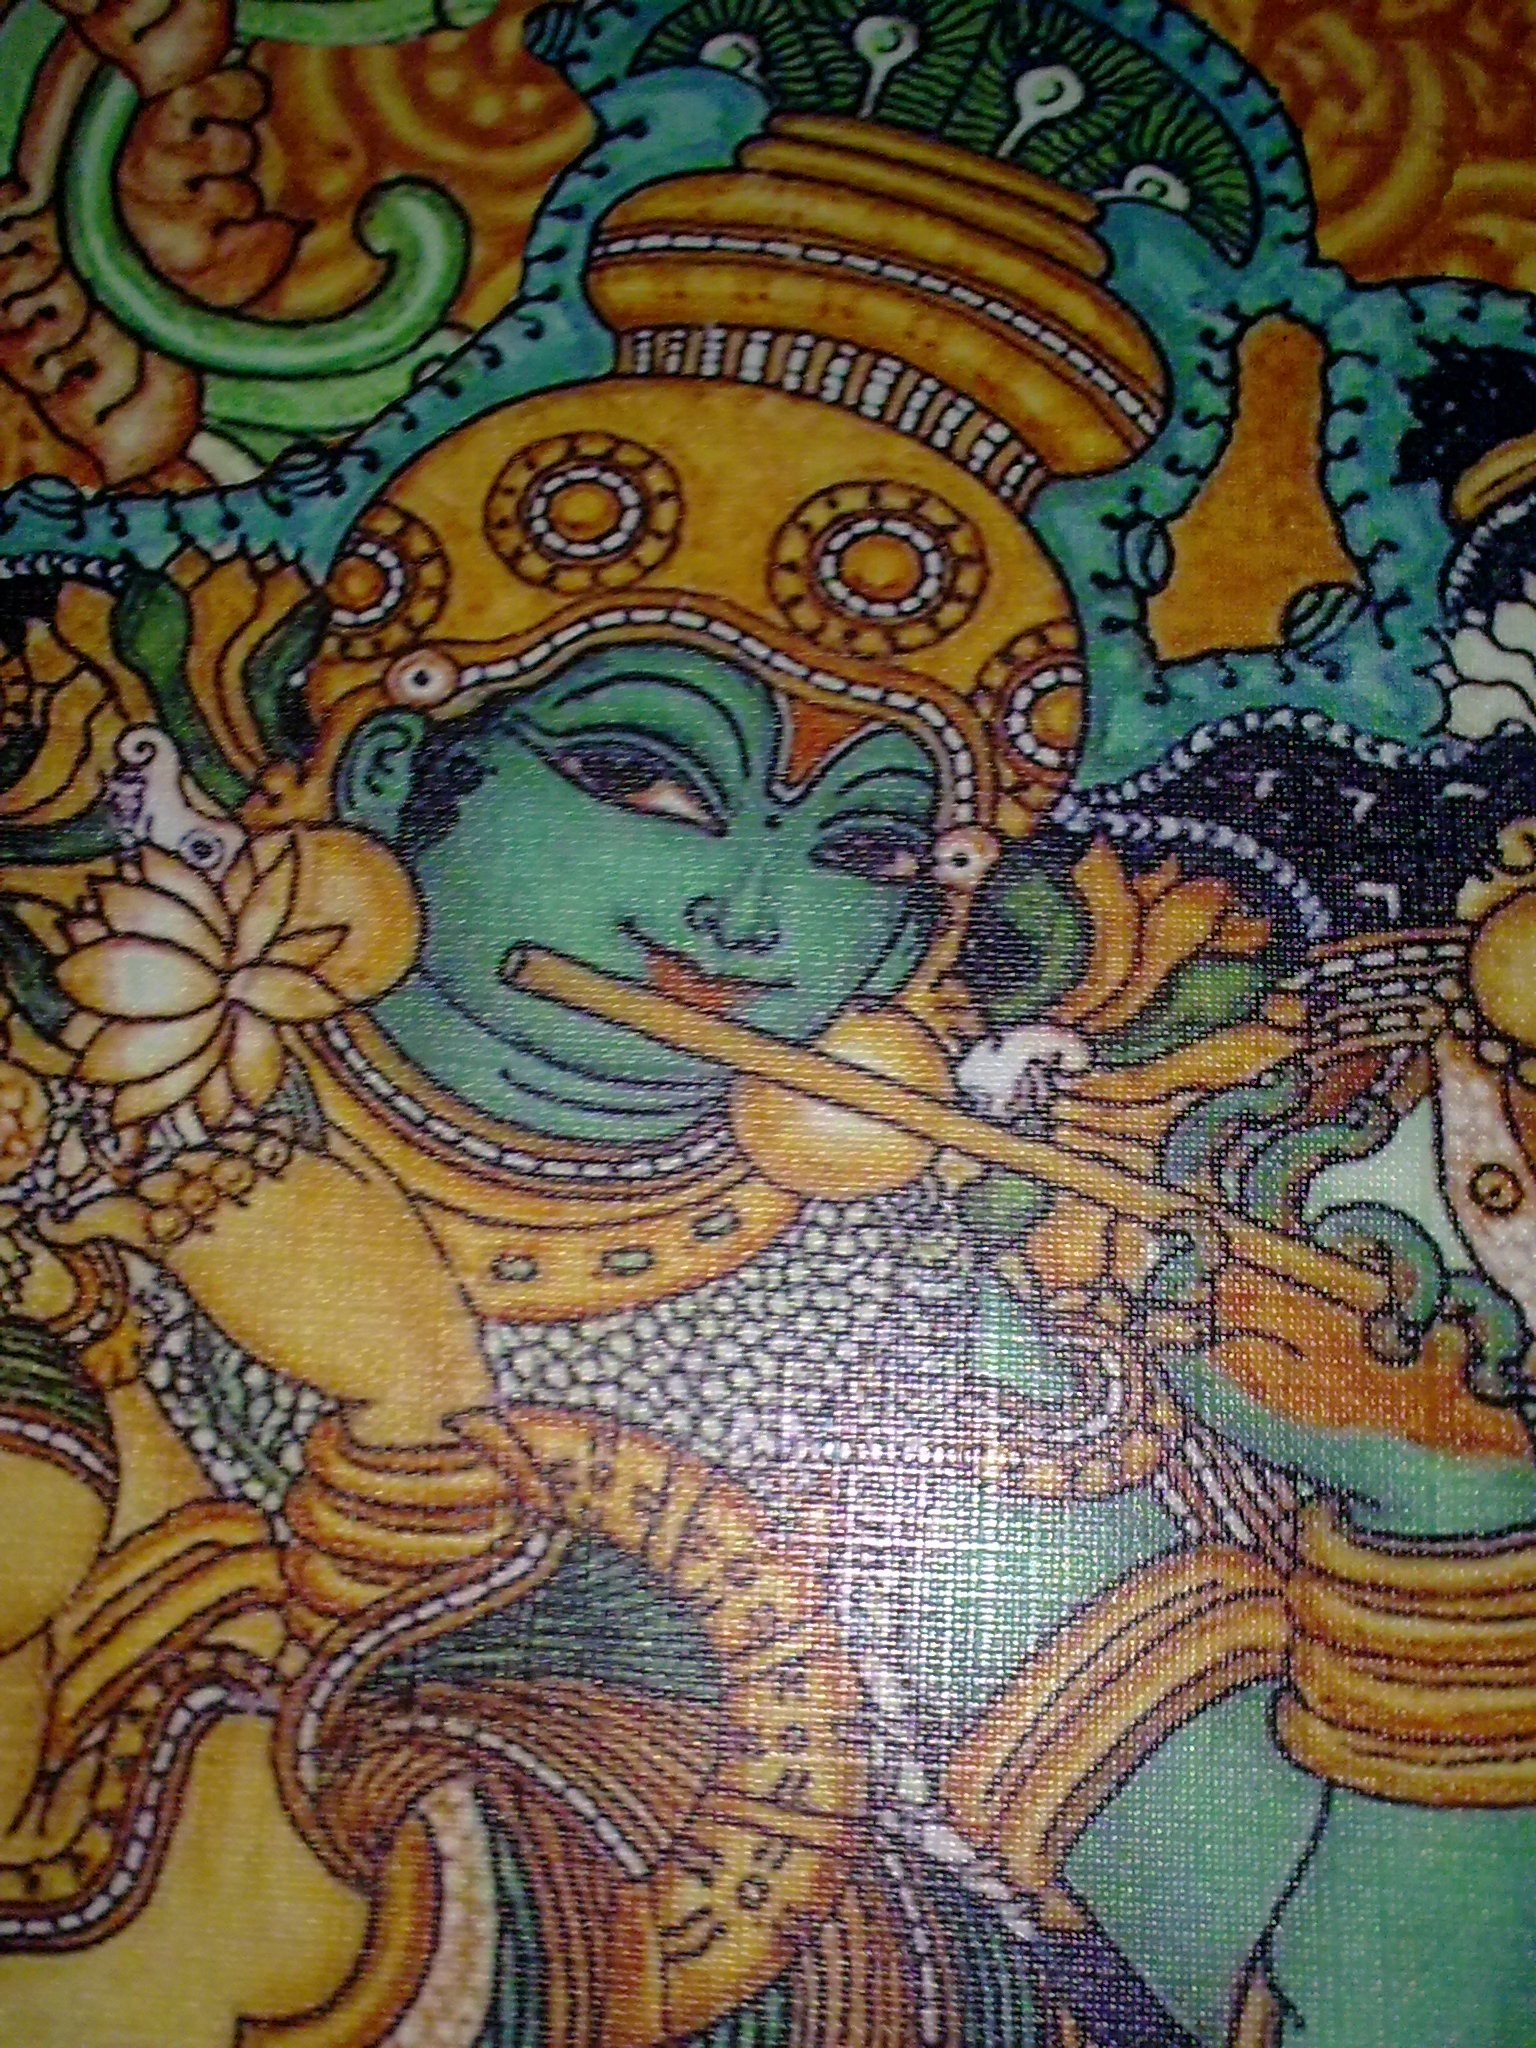 Radha with krishna playing flute kerala mural painting art for Art mural painting